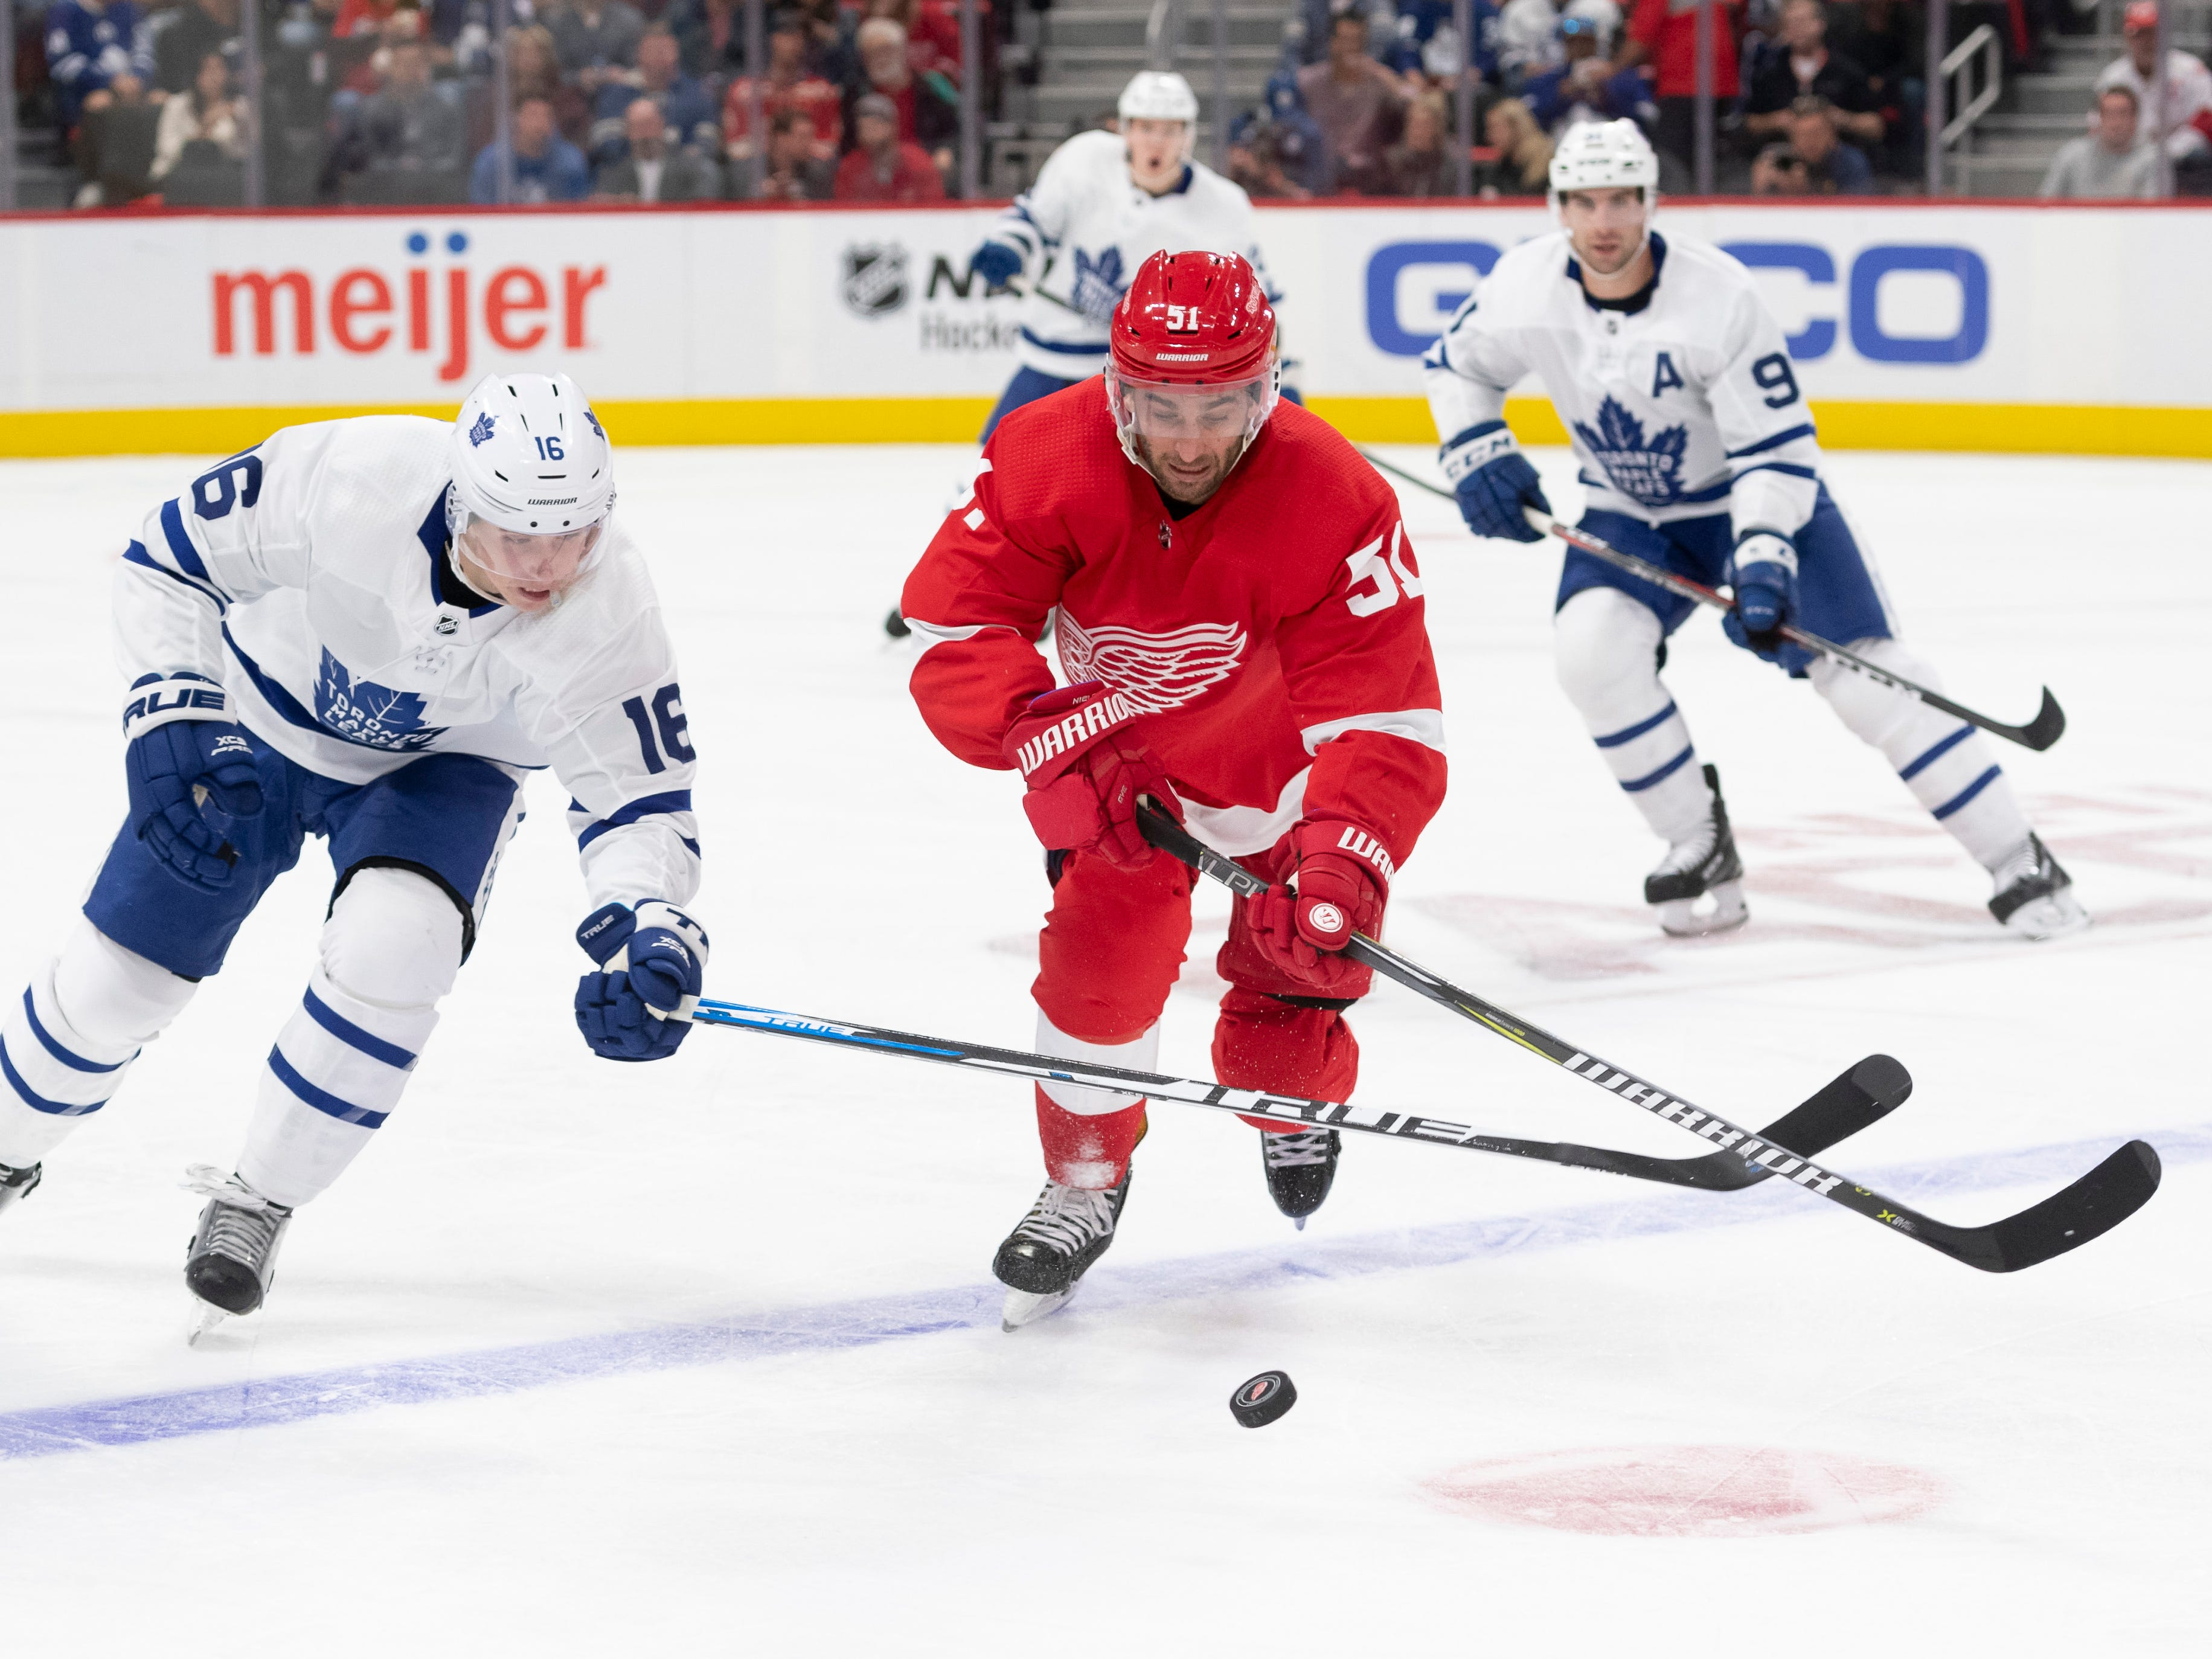 Toronto center Mitch Marner and Detroit center Frans Nielsen battle for the puck the second period.